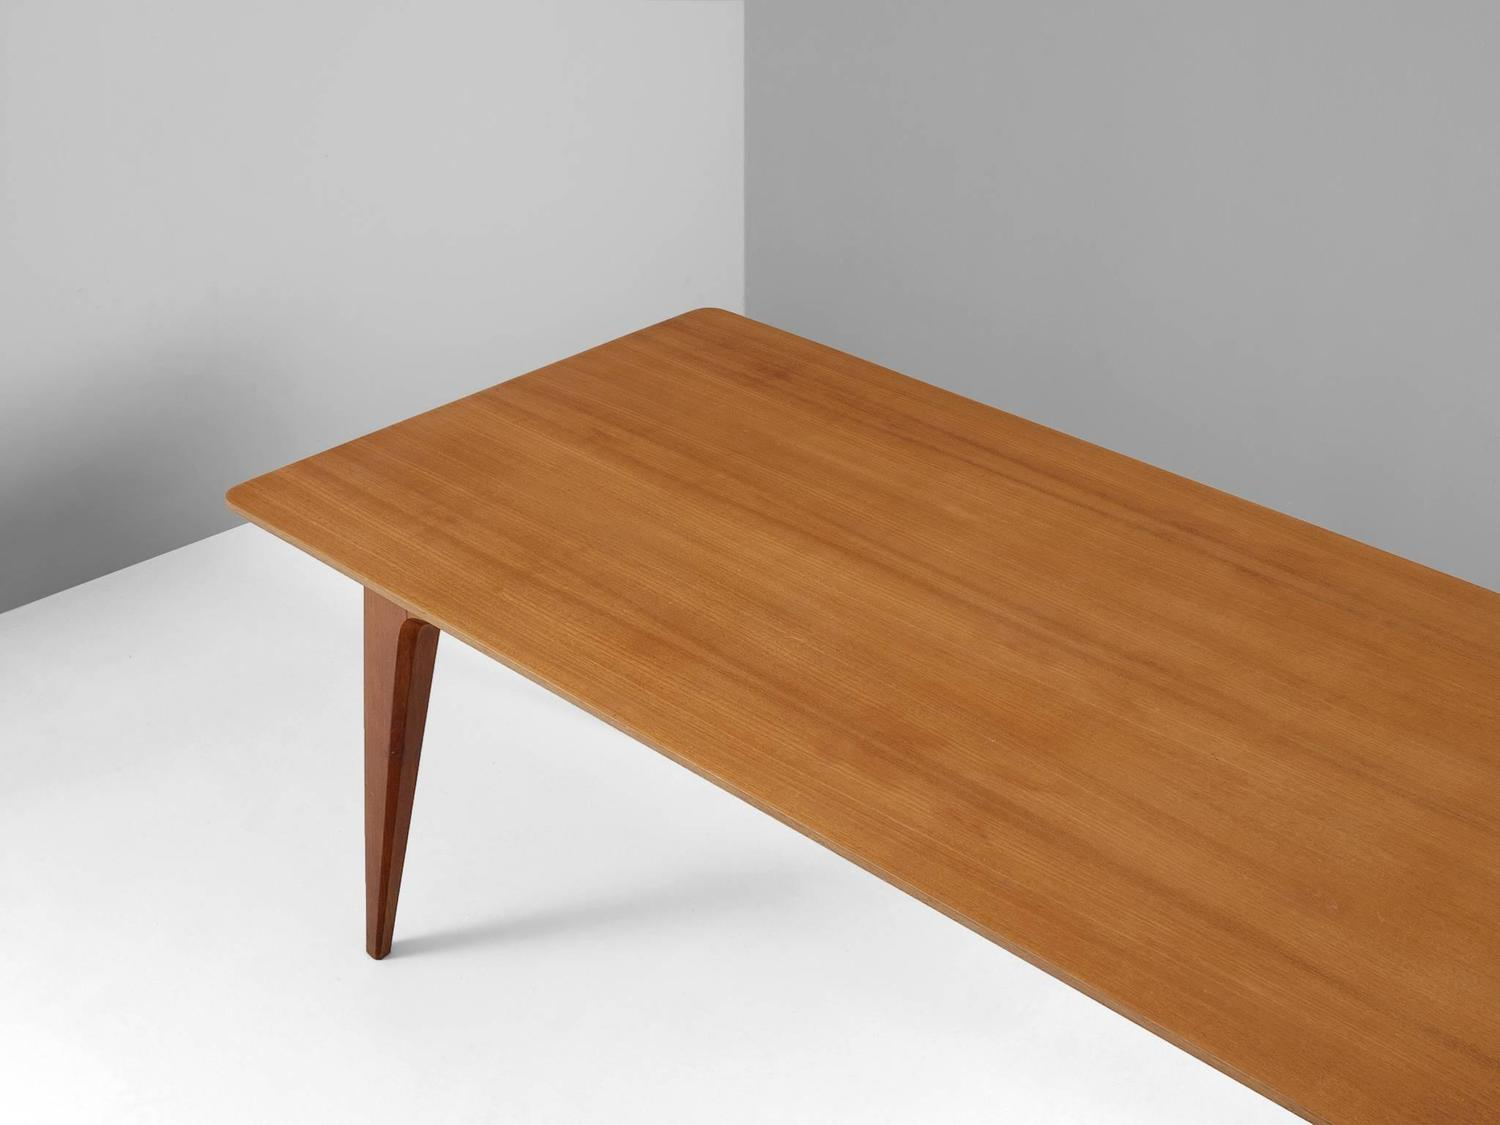 Rectangular Dining Table in Teak For Sale at 1stdibs : 4208item41975z from www.1stdibs.com size 1500 x 1125 jpeg 71kB